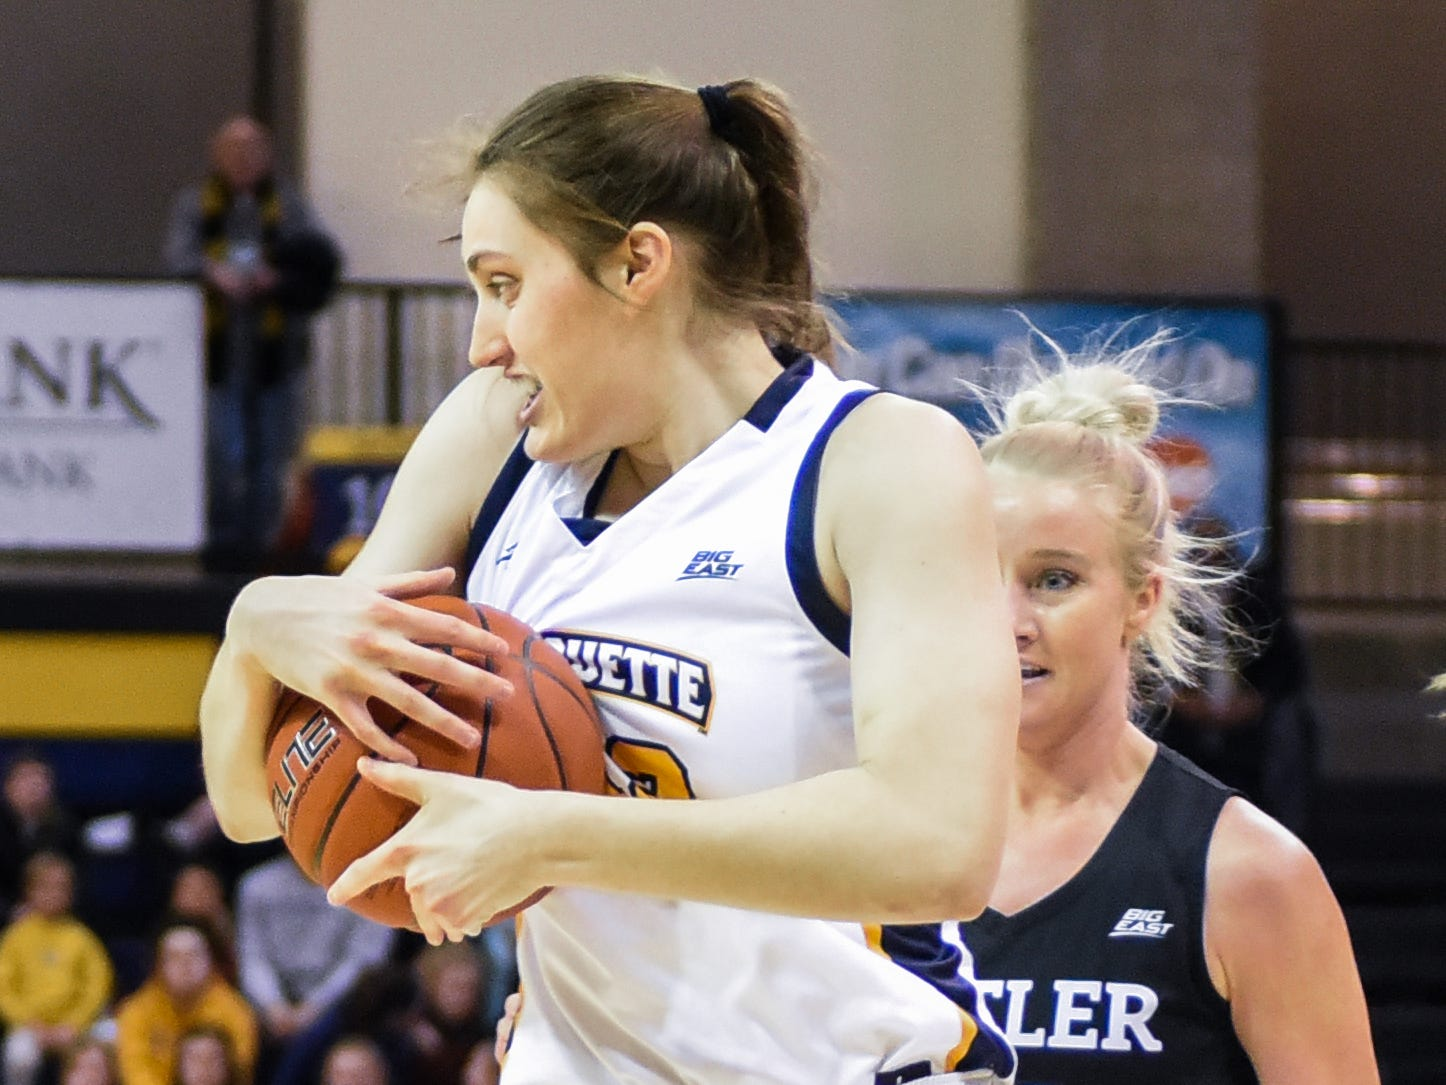 Marquette guard Lauren Van Kleunen recovers a long rebound in front of Butler guard Whitney Jennings in a Big East women's college basketball game Friday, February 22, 2019, at the Al McGuire Center.